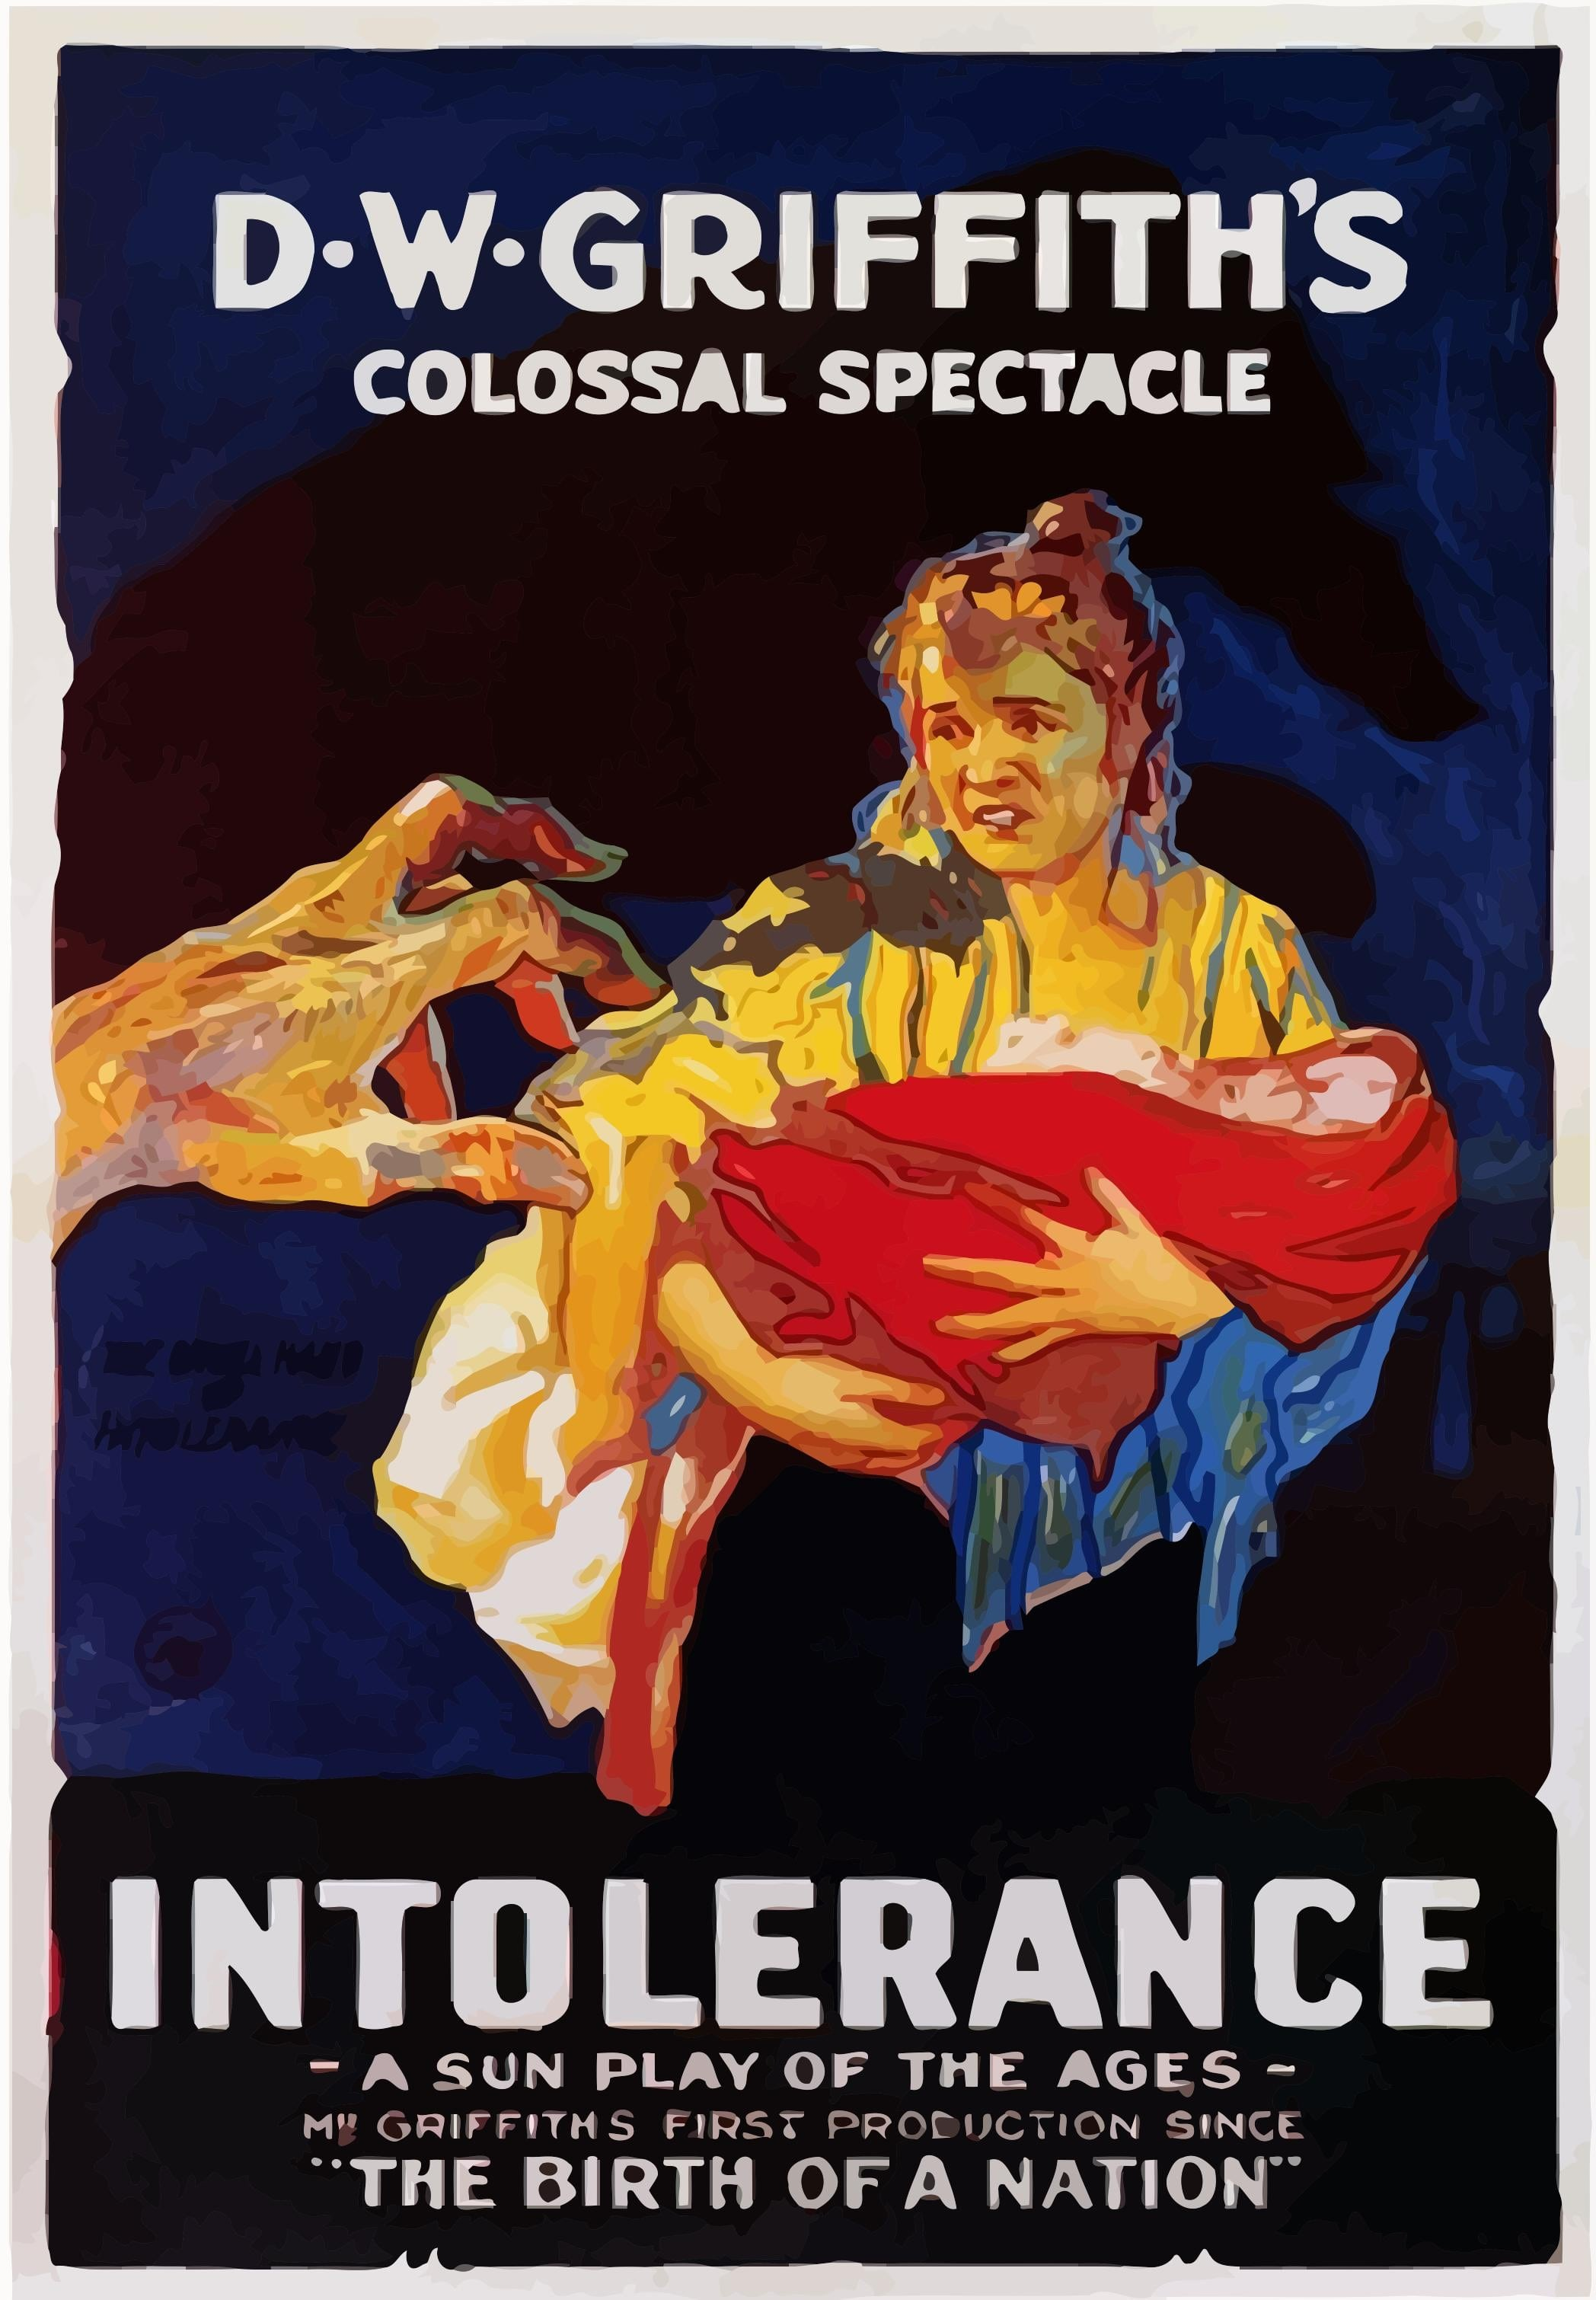 Intolerance: A Sun Play of the Ages poster